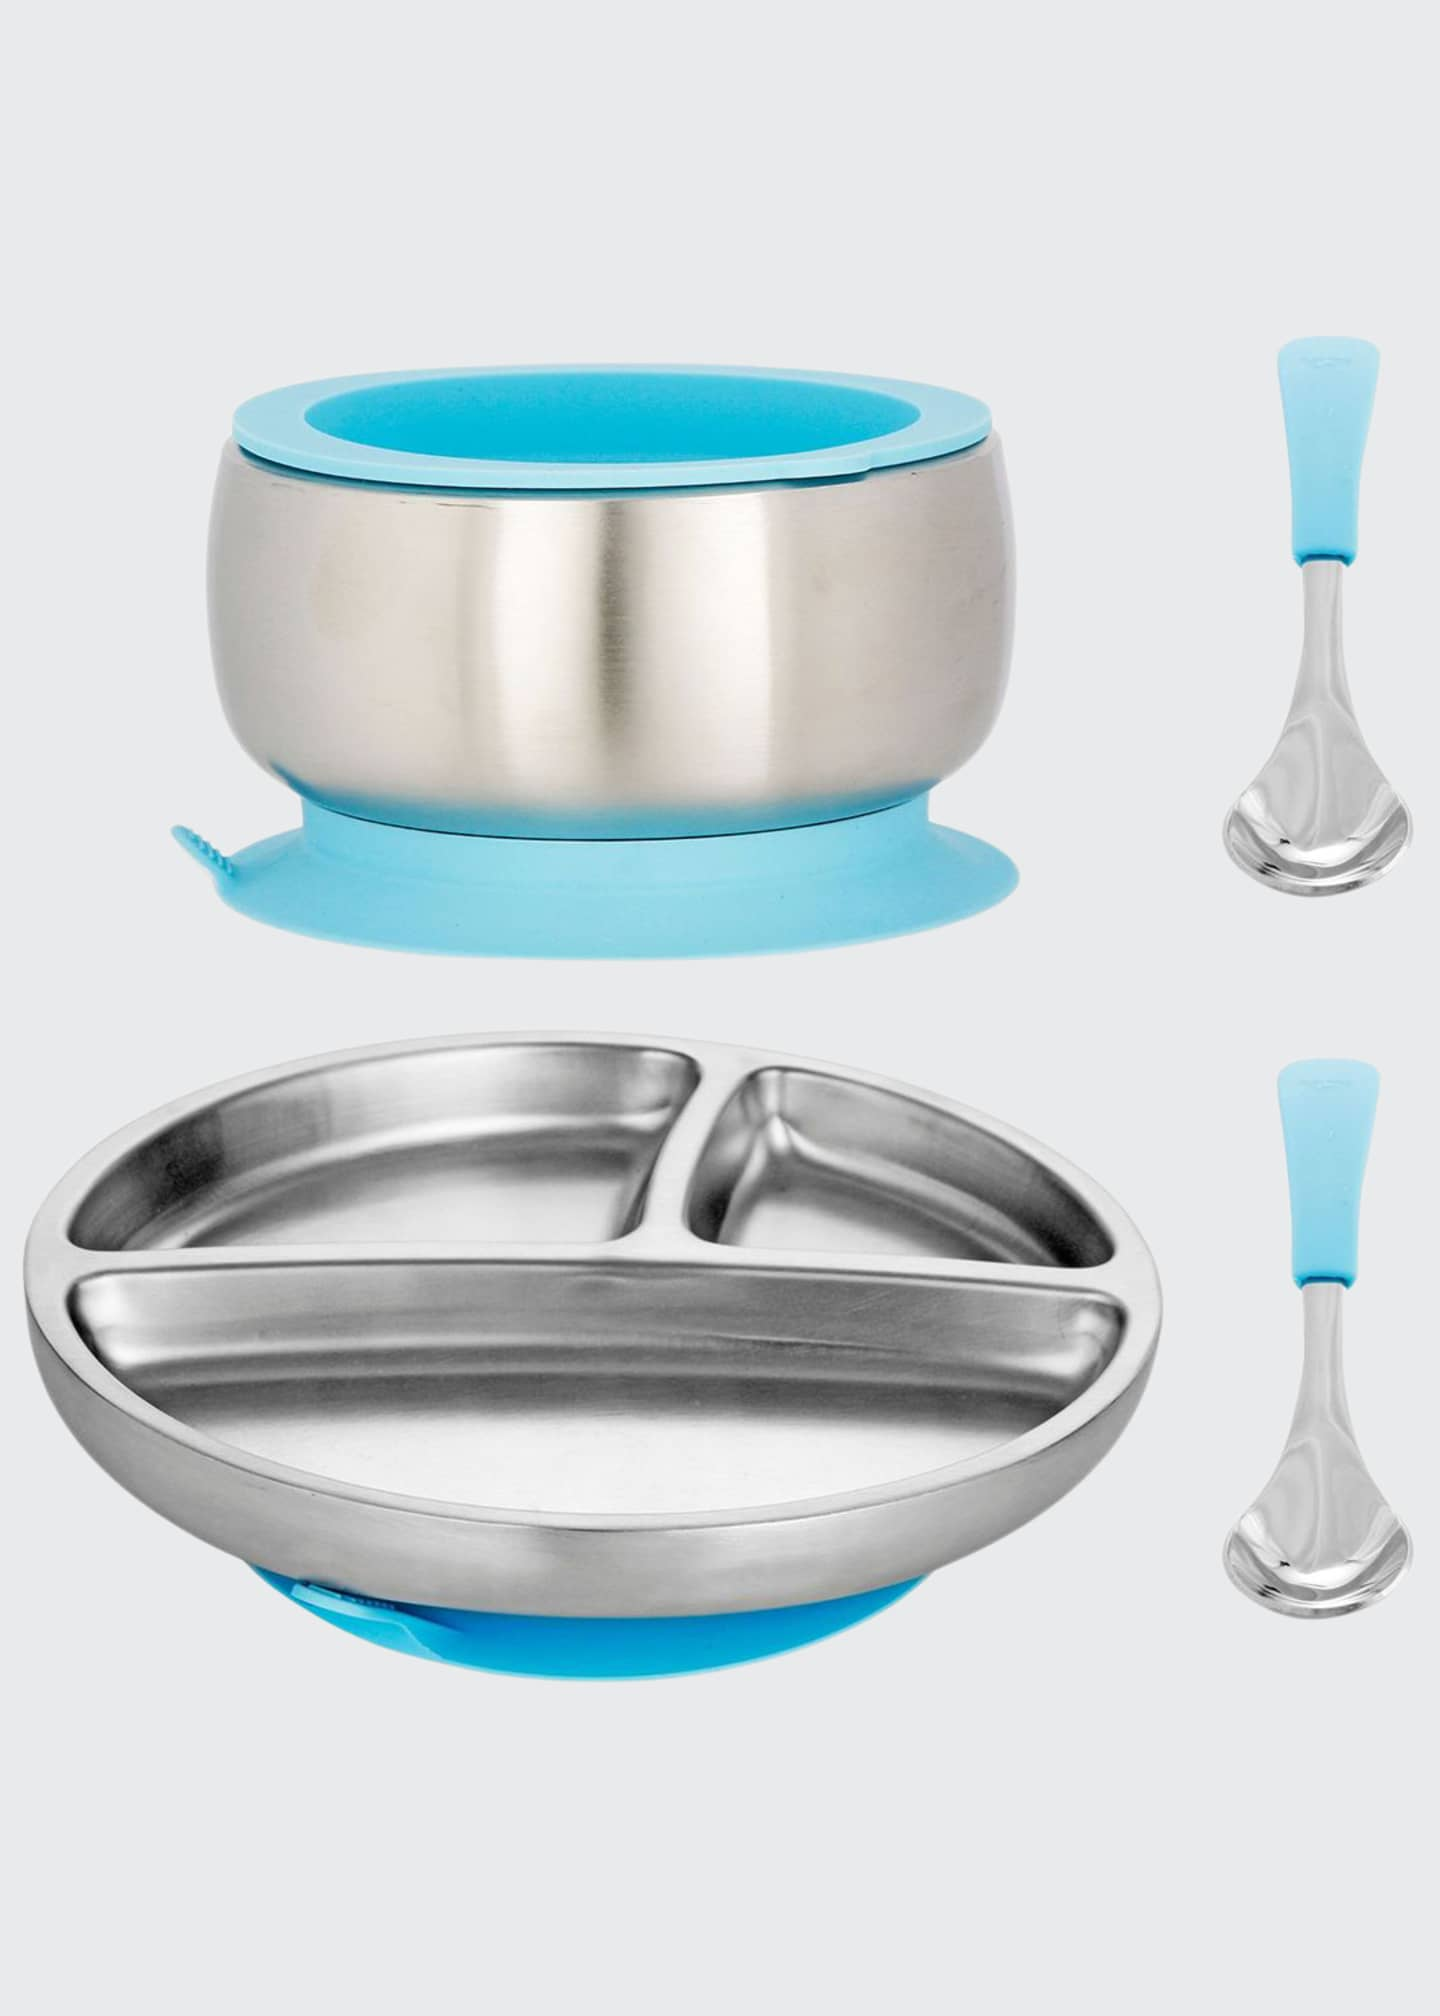 Avanchy Toddler's Stainless Steel Plate, Bowl & Spoon